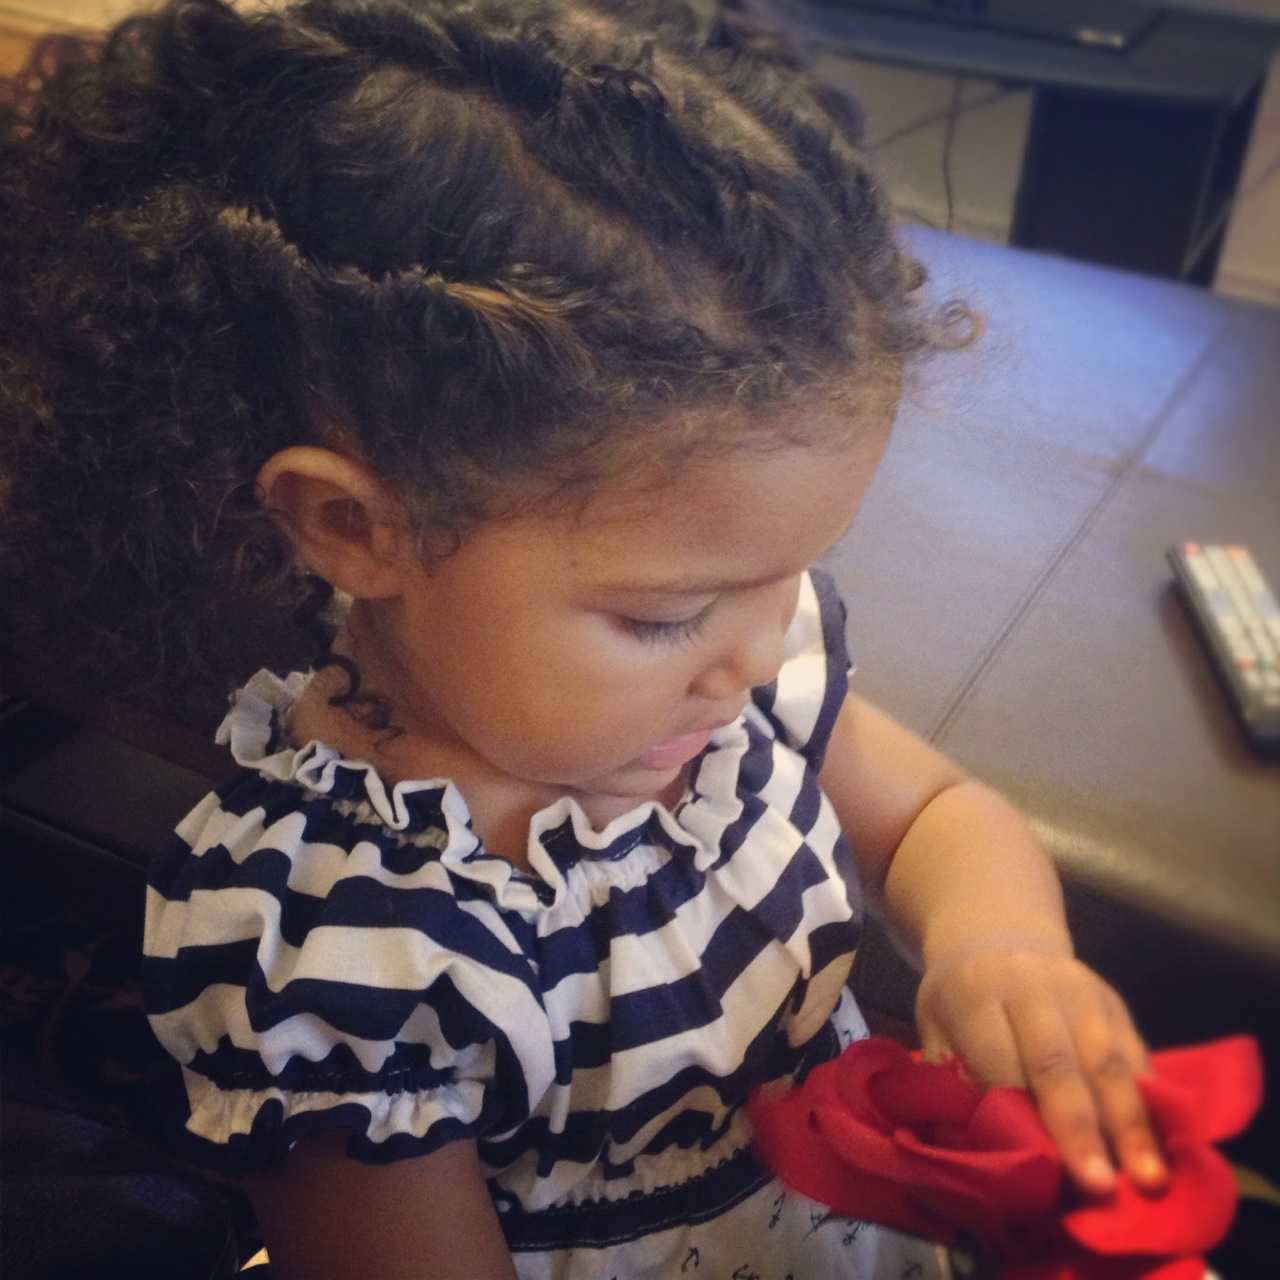 Hairstyles Mixed Hair : ... Mixed Girls Hair further Mixed Toddler Hairstyles Girls. on hairstyles